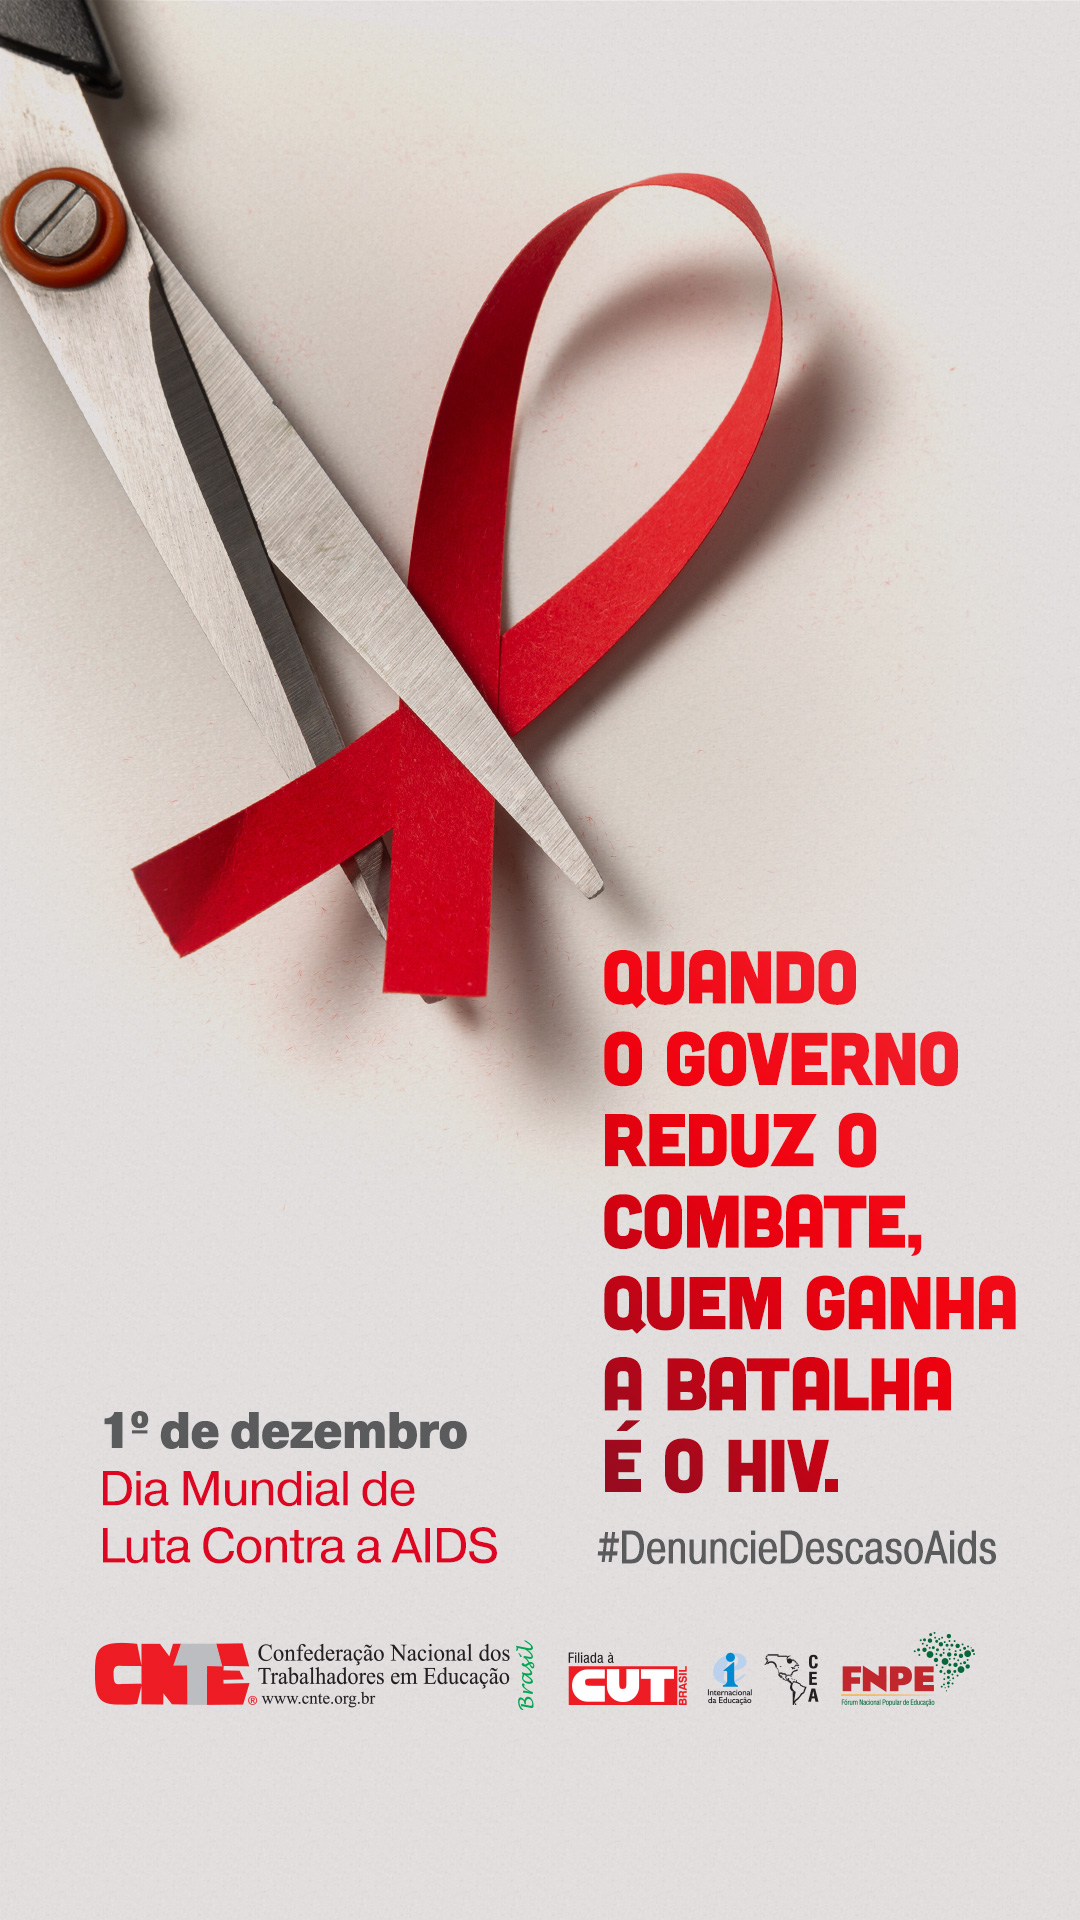 ombate a aids social story 2019